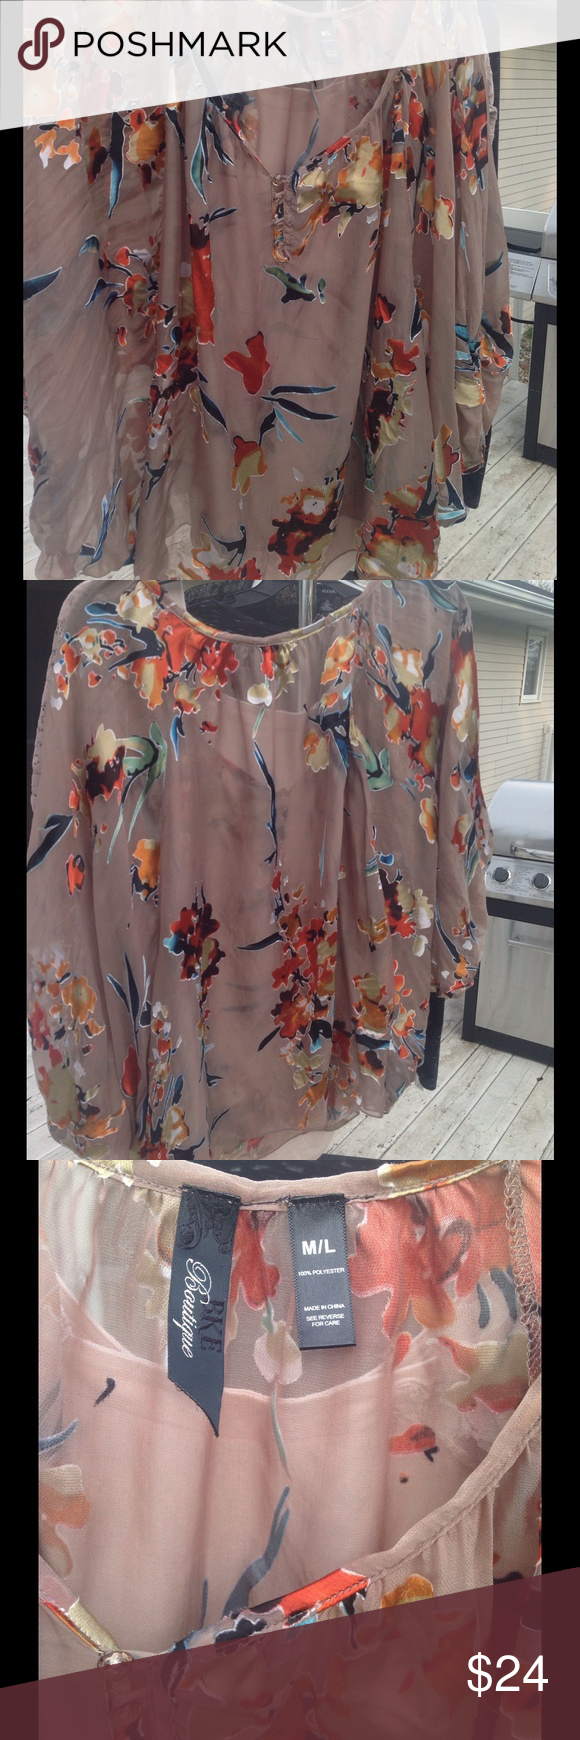 BKE Boutique Sheer Blouse (From The Buckle) BKE BOUTIQUE Sheer Blouse.  SIZE:  M/L.  Bought from the Buckle full price but have only worn a few times BKE Tops Blouses